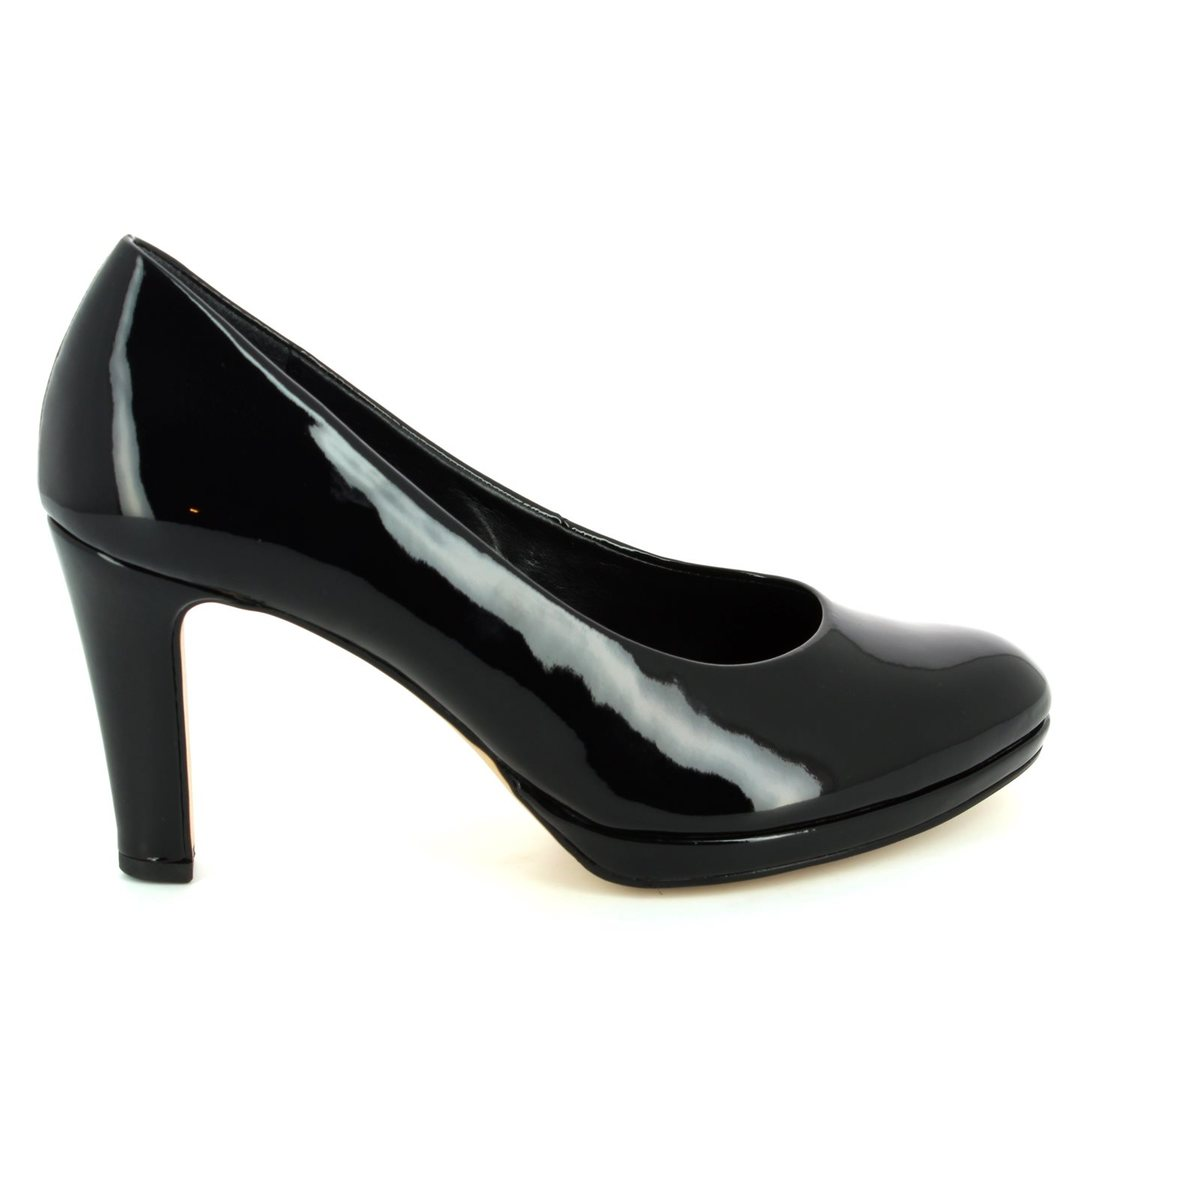 87ce954c967 Gabor High-heeled Shoes - Black patent - 51.270.77 SPLENDID